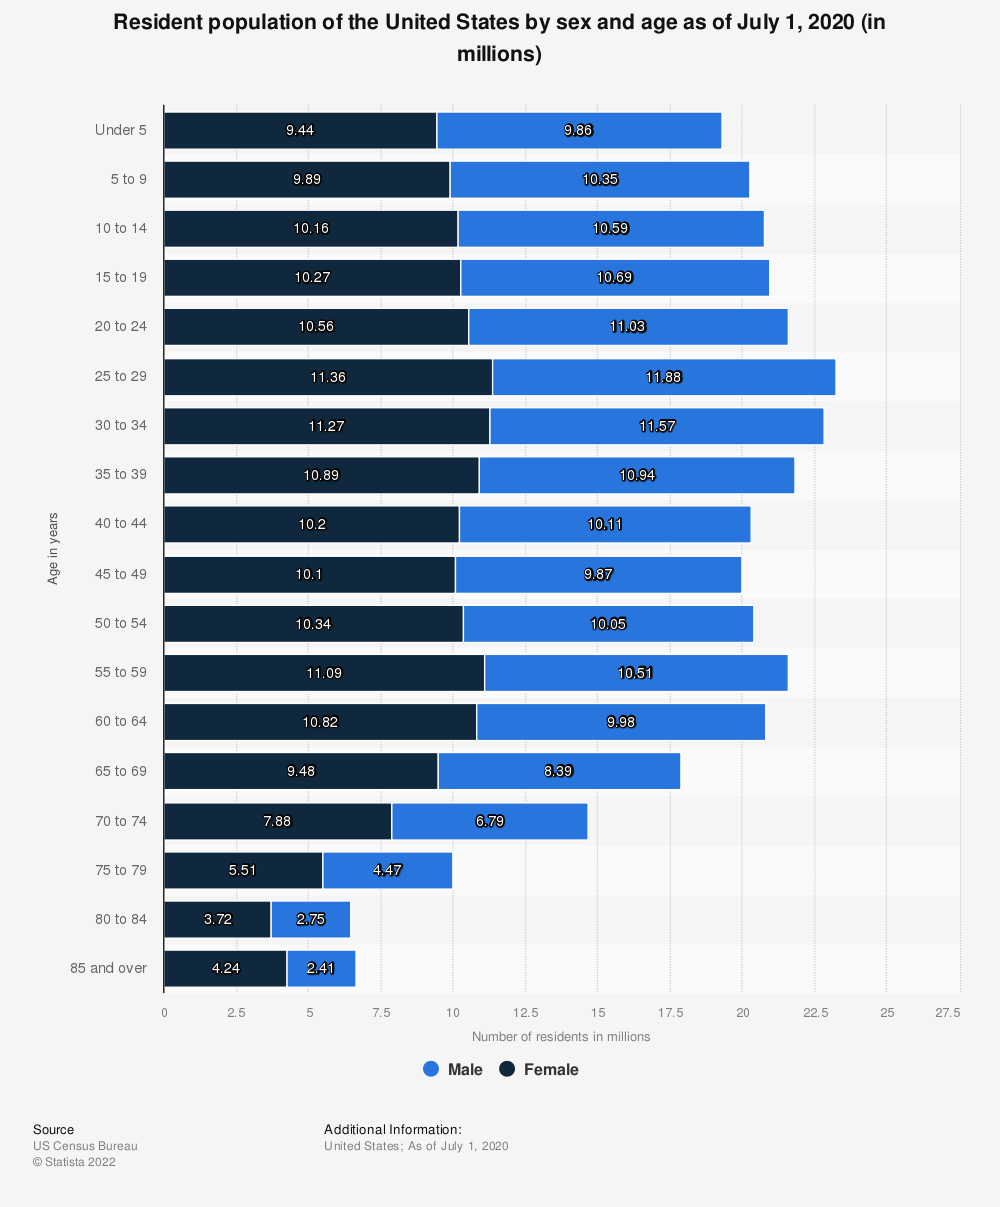 Statistic: Resident population of the United States by sex and age as of July 1, 2019 (in millions) | Statista